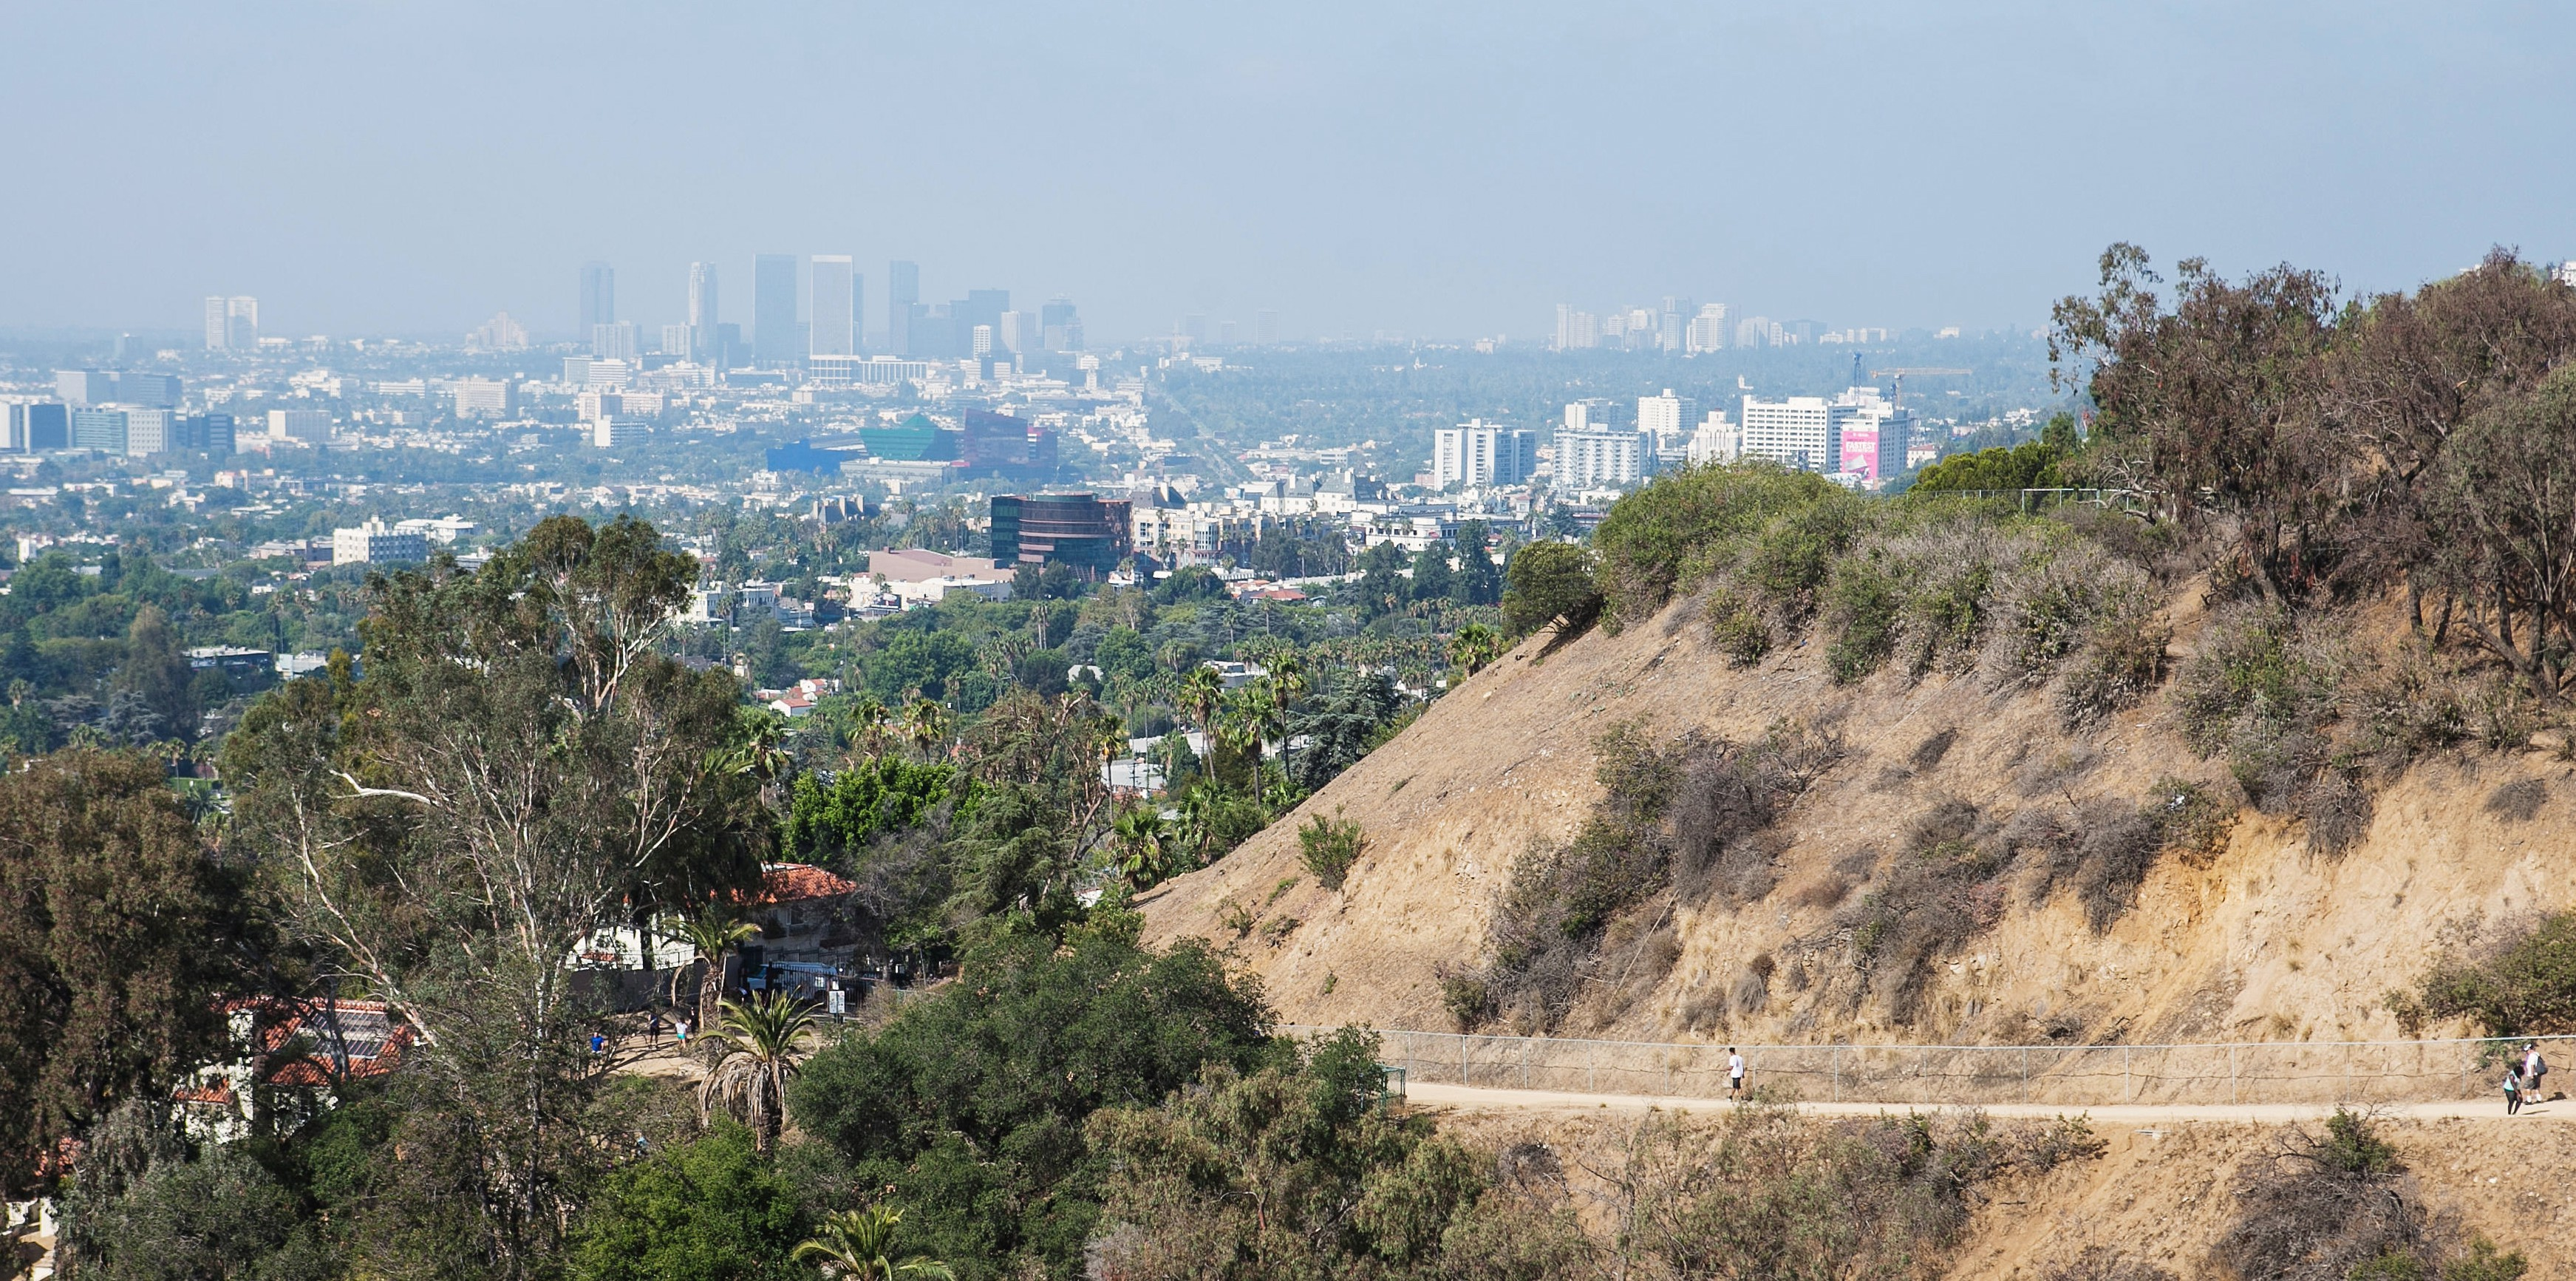 Runyon Canyon Park with view over Los Angeles, California